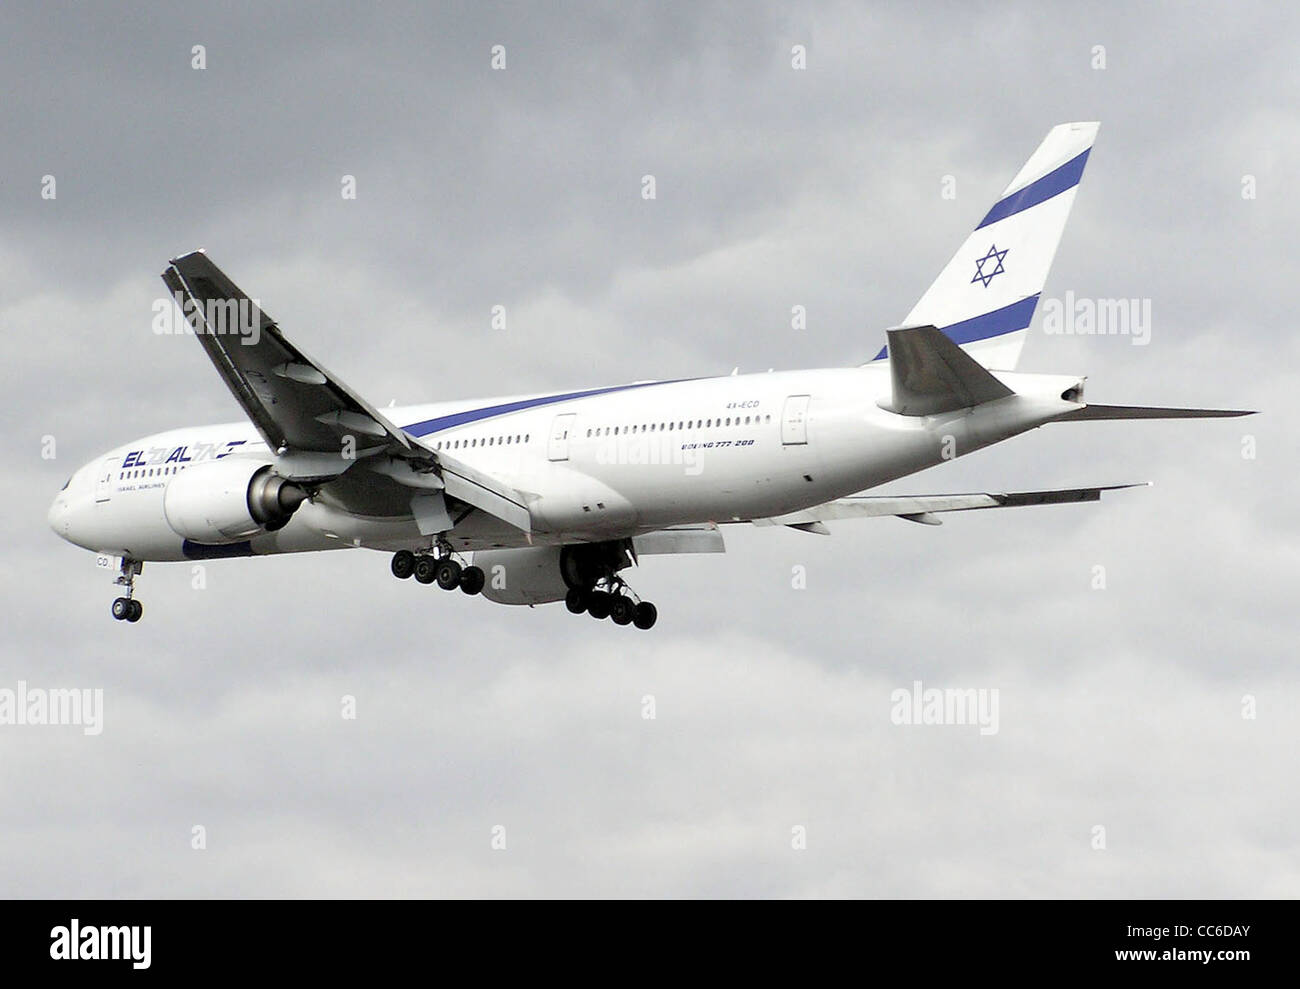 El Al Boeing 777-200 (4X-ECD) landing at Heathrow Airport, London. - Stock Image